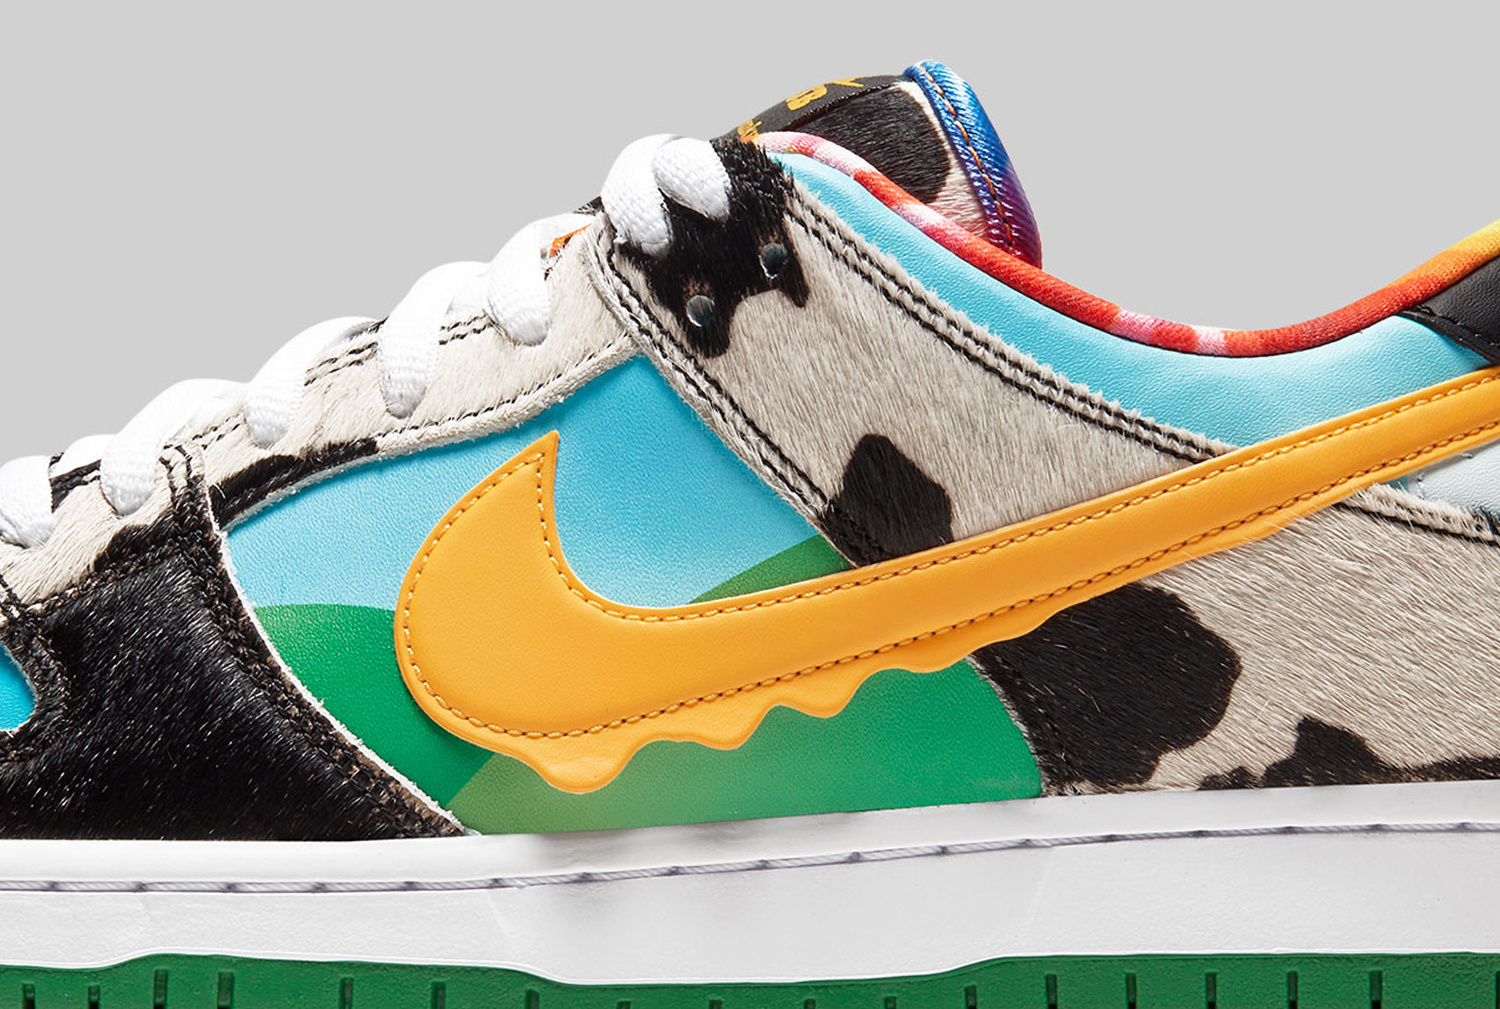 Launches - 23.05.2020 - The Nike SB x Ben & Jerry's Dunk Low ...